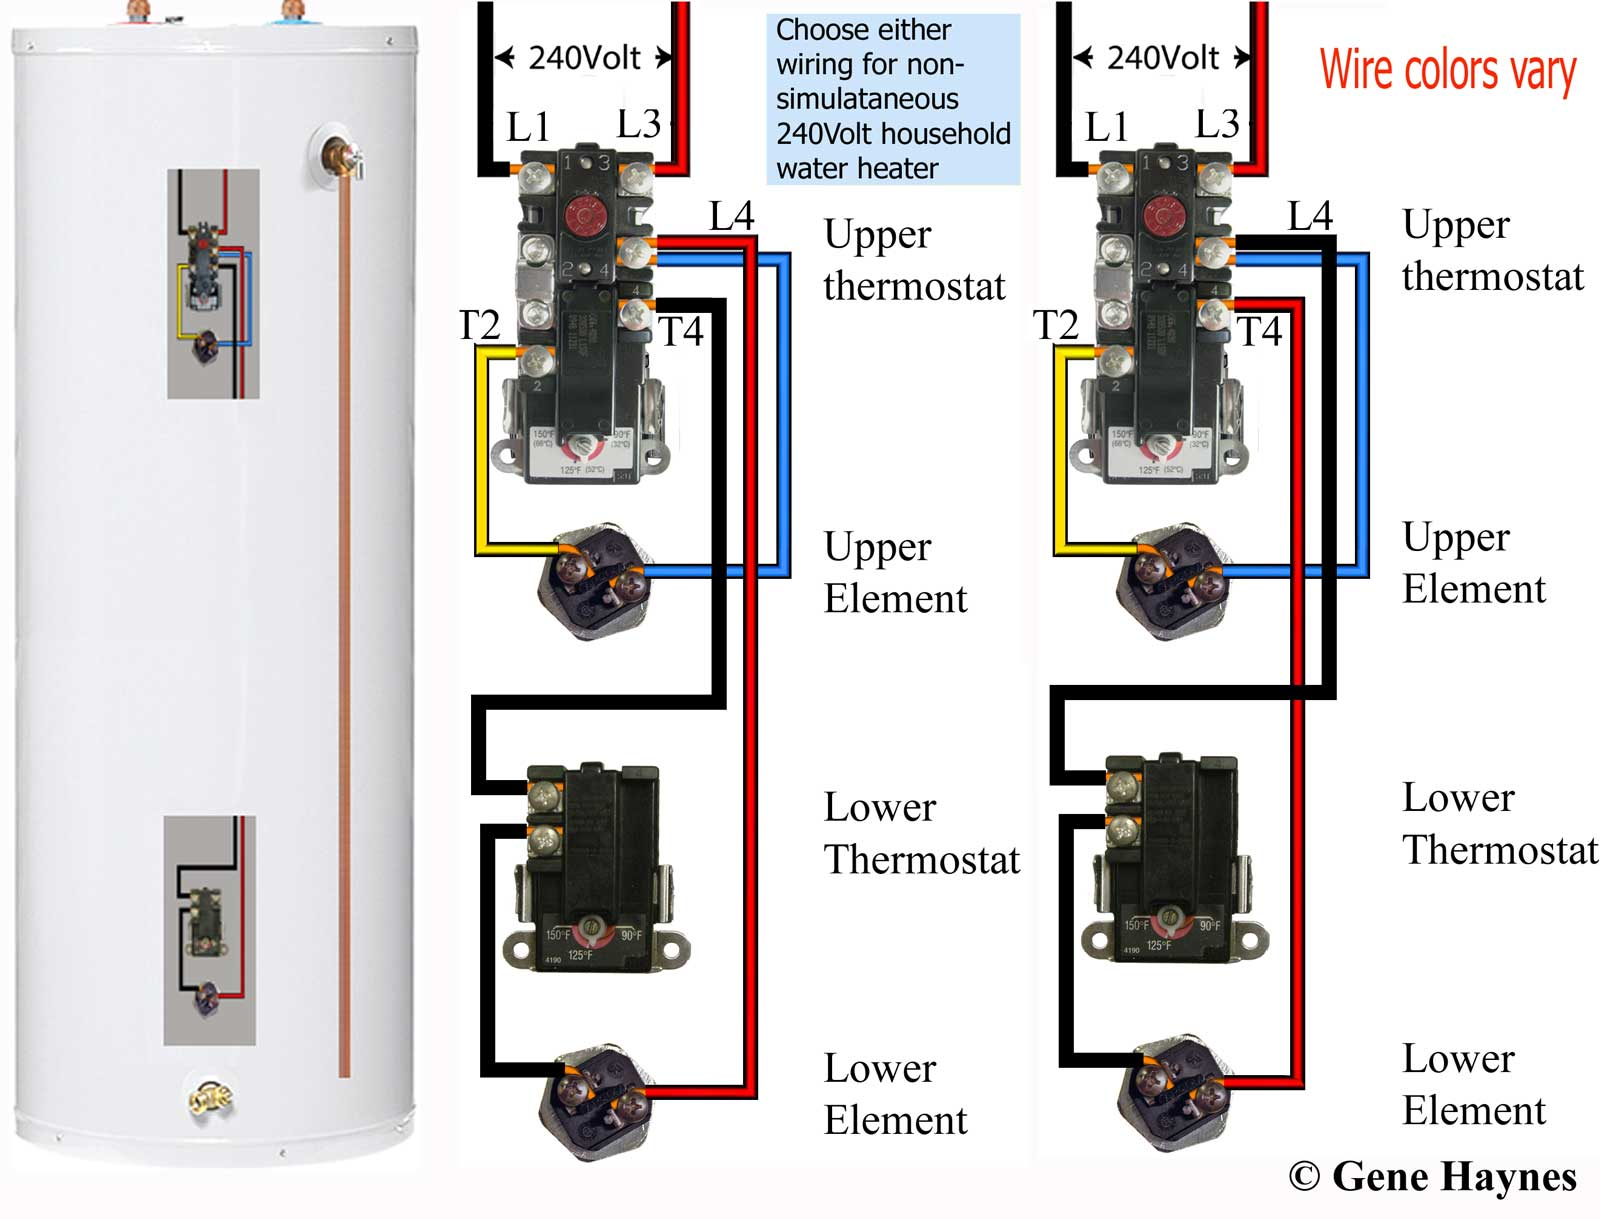 how to wire water heater thermostats rh waterheatertimer org water heater upper thermostat wiring diagram water heater upper thermostat wiring diagram